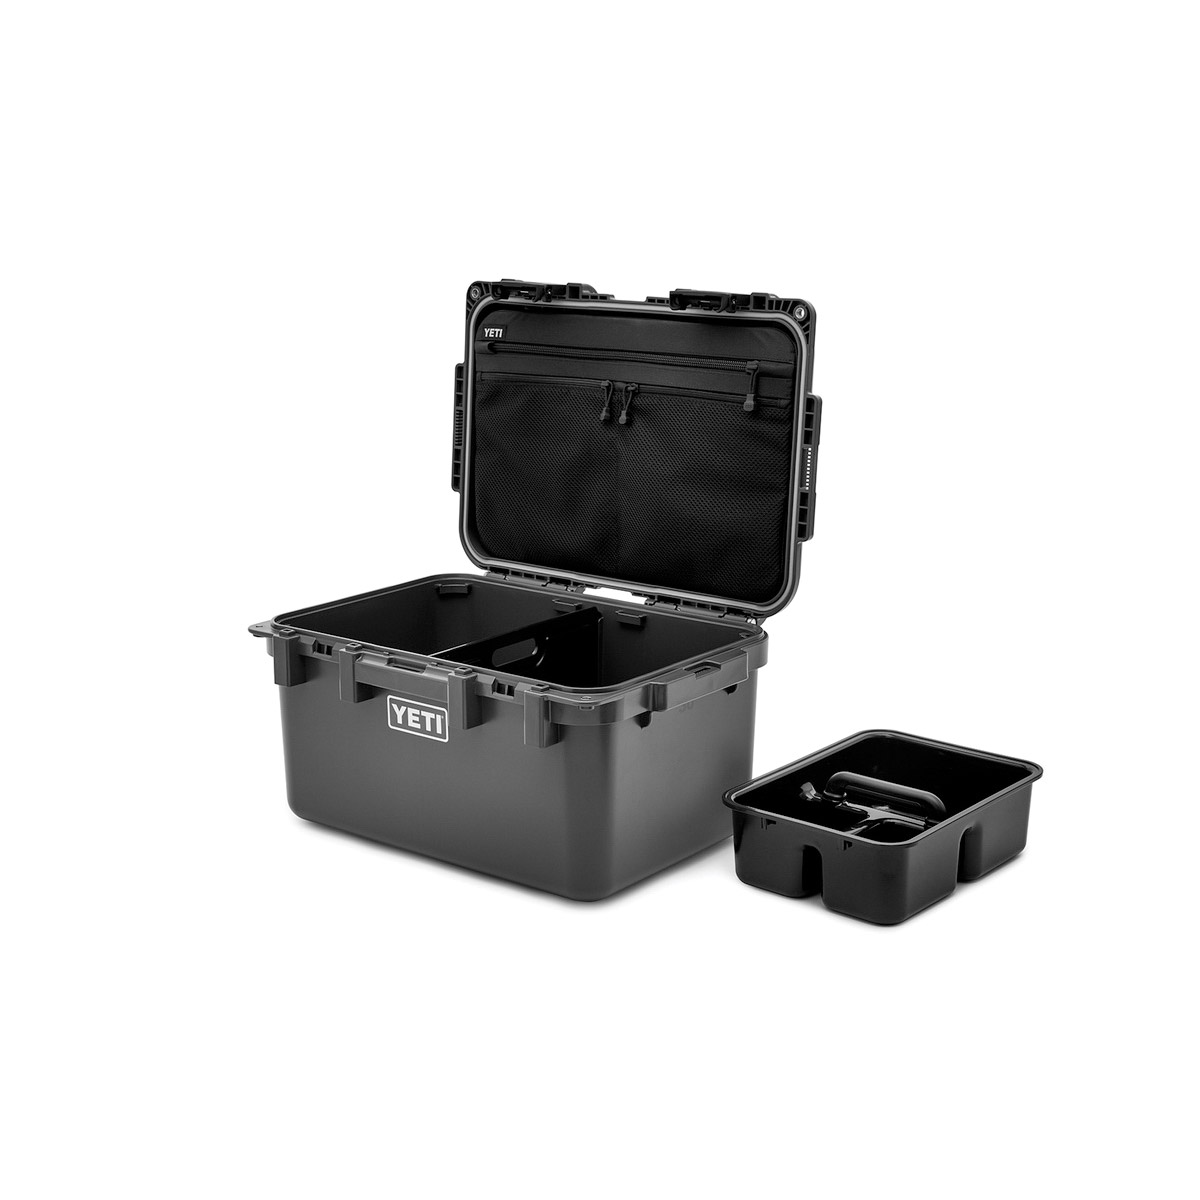 Picture of YETI LoadOut GoBox 26010000026 Gear Case, 30 L Capacity, Plastic, Charcoal